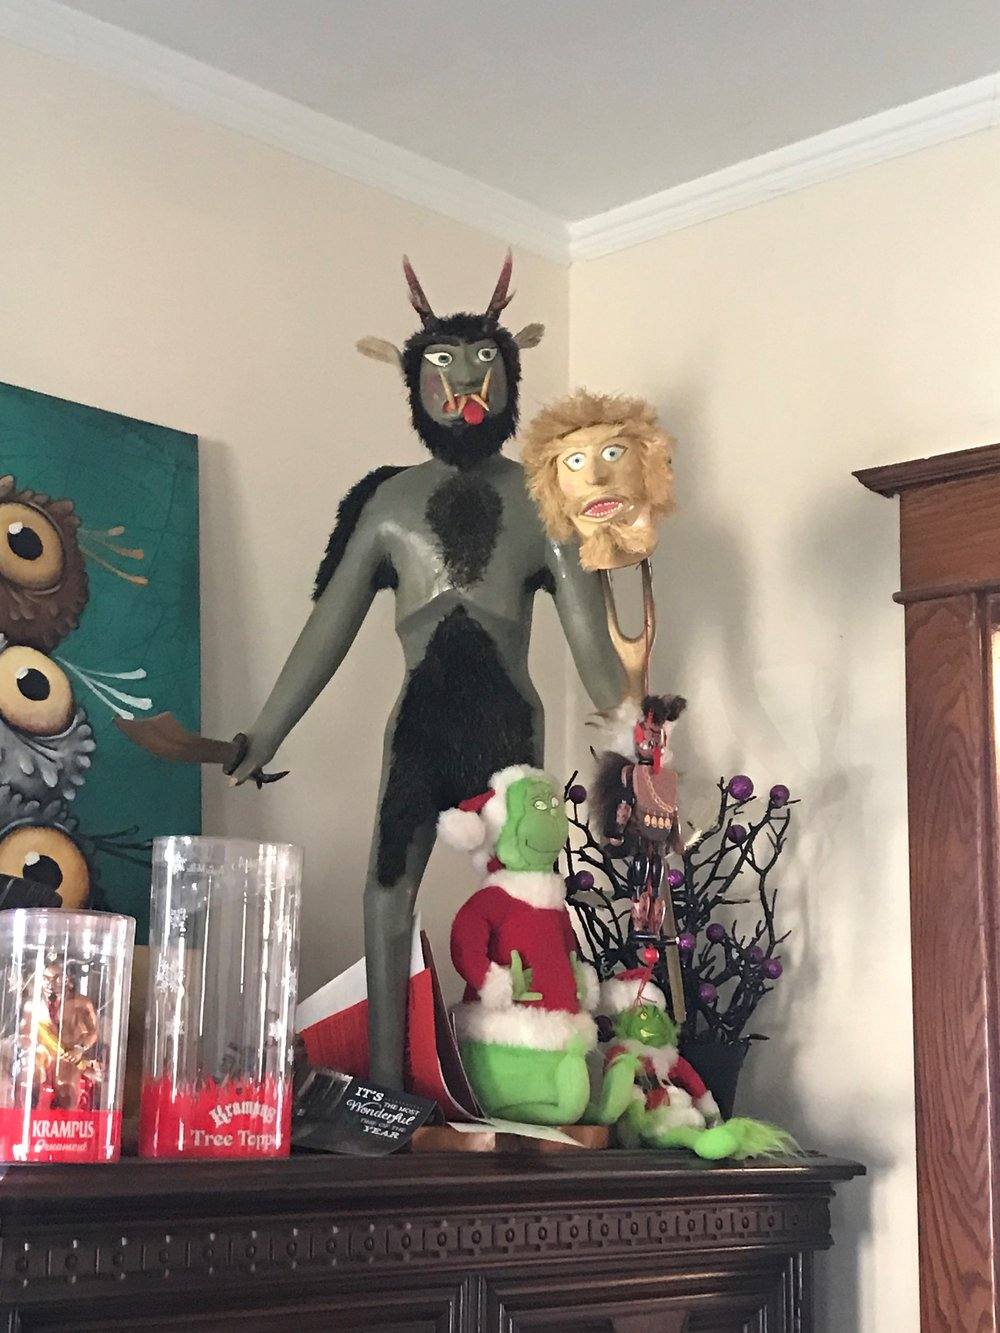 A few of the Krampus collectibles at the home of the Northern Illinois Krampus, Andrew Skic